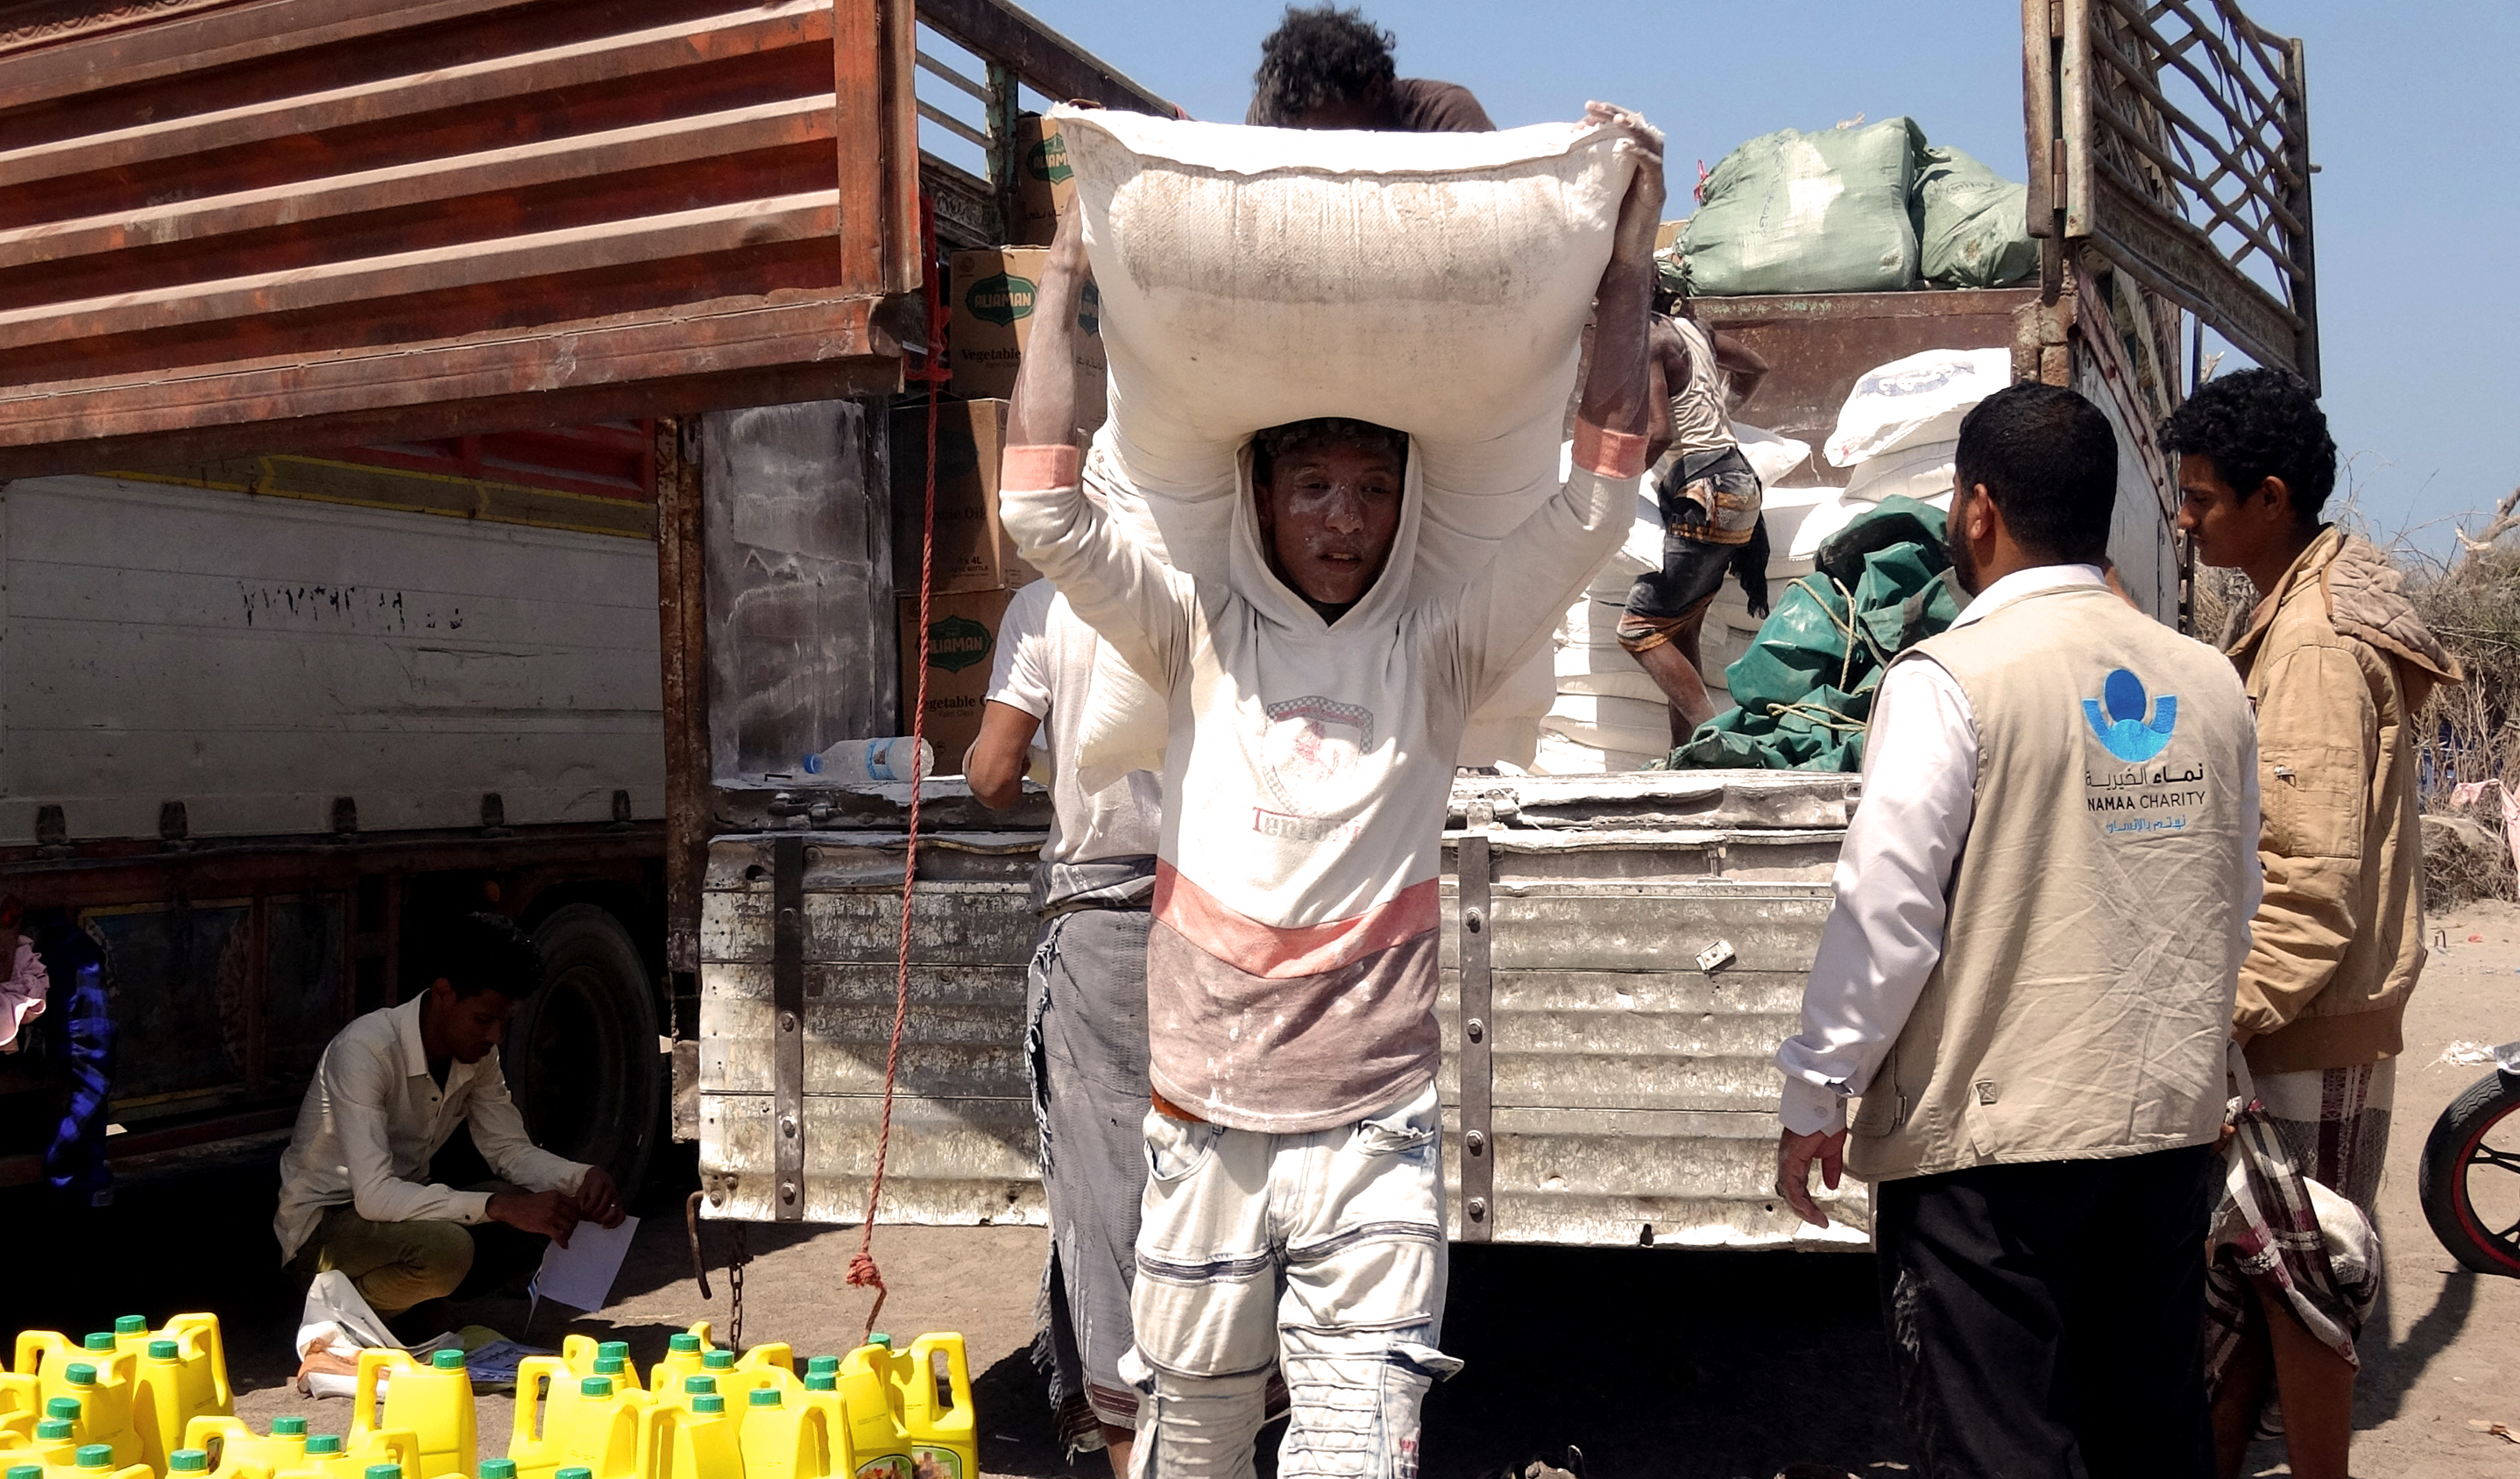 A person carrying a large sack of food, taken from the back of a small truck, on their head.